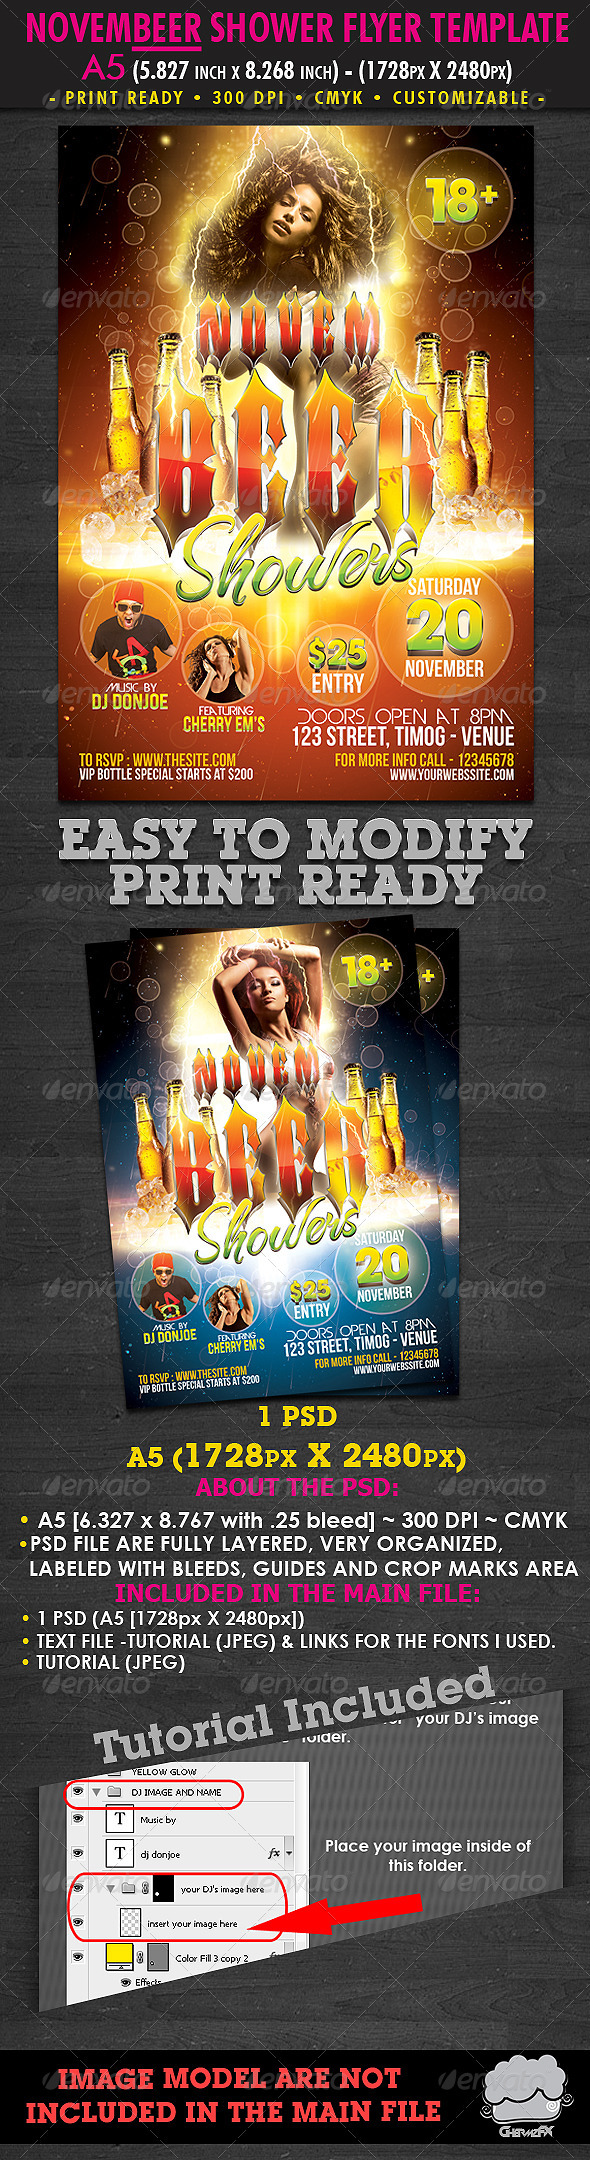 Novembeer Showers Flyer Template - Clubs & Parties Events